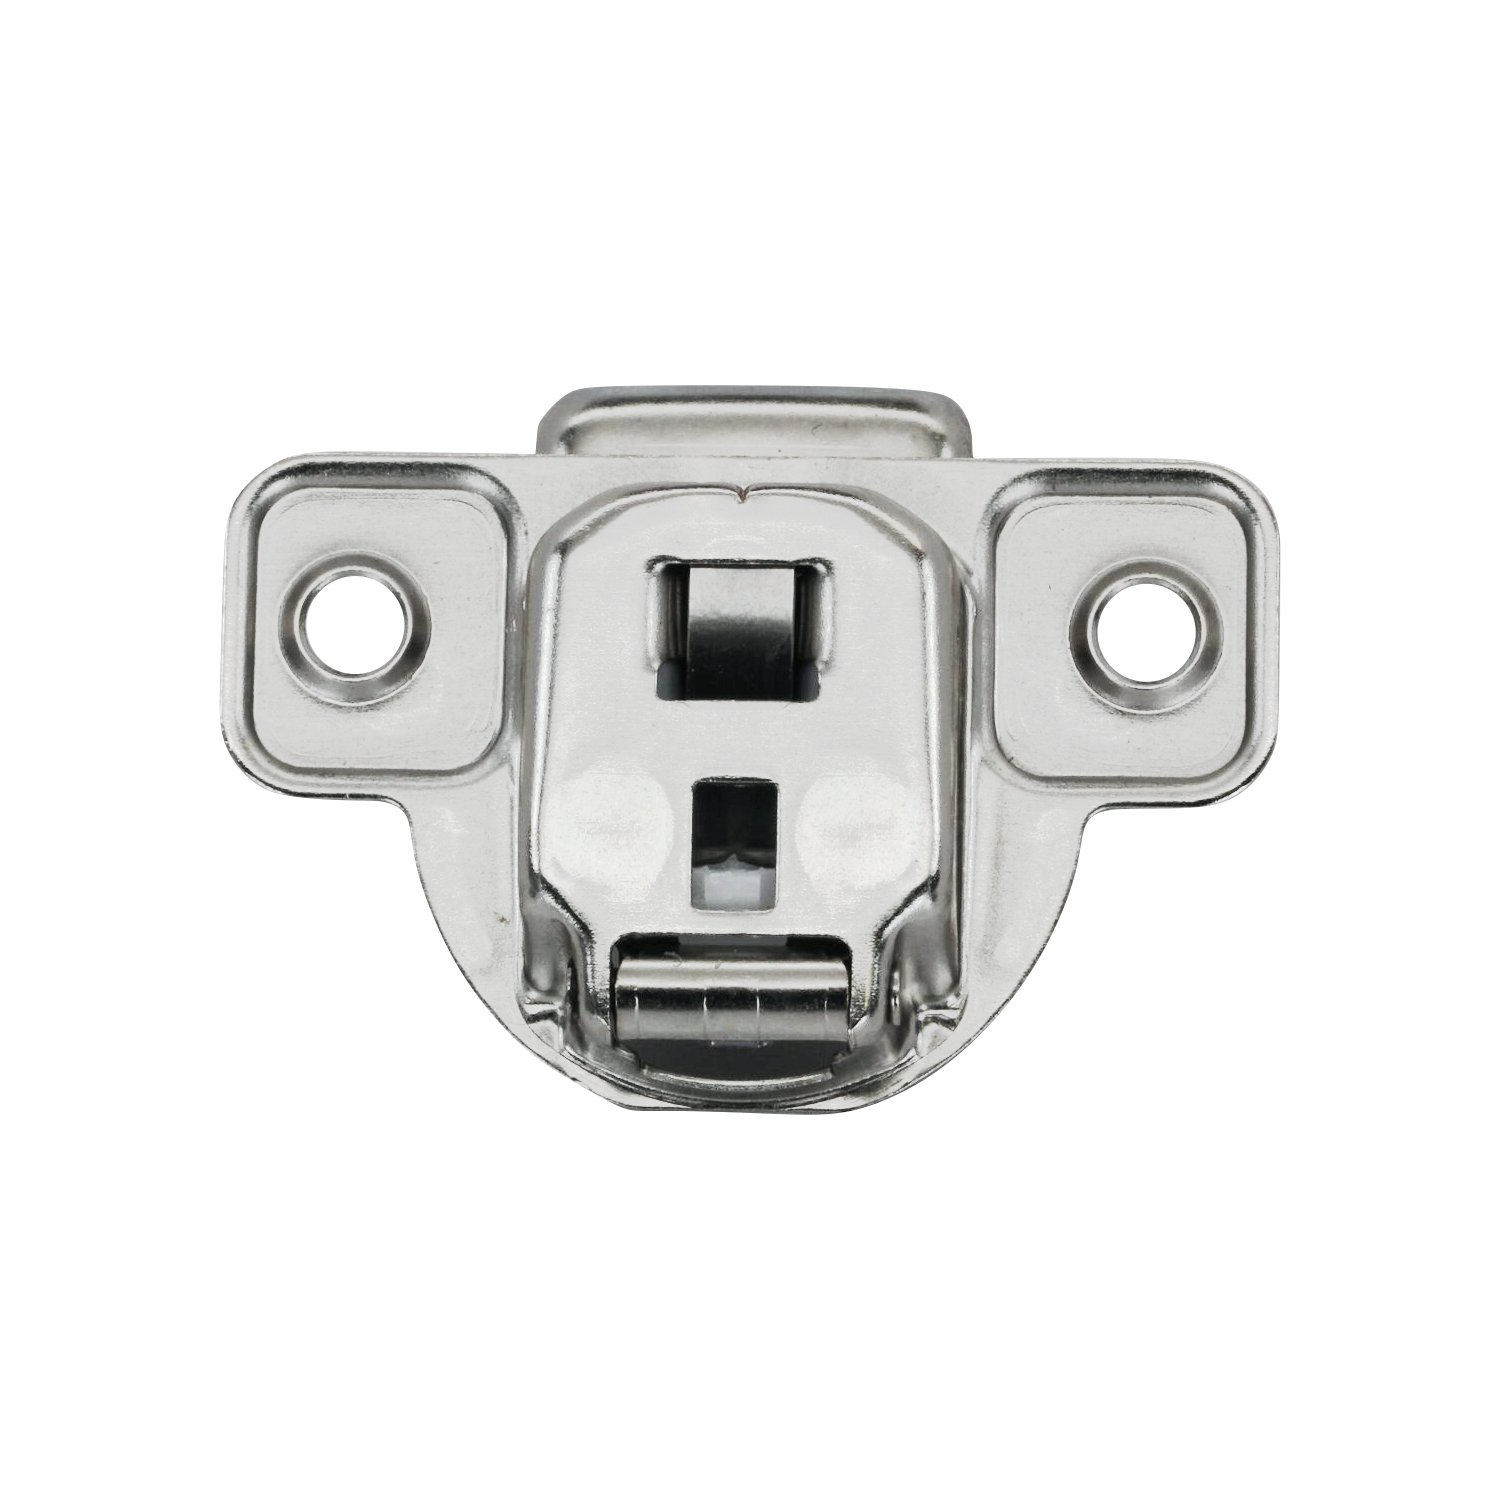 25 Pack Salice 106 Degree Silentia 1-3/8'' Overlay Screw On Soft Close Cabinet Hinge with 2 Cam Adjustment CUP3CD9 by Rok (Image #6)